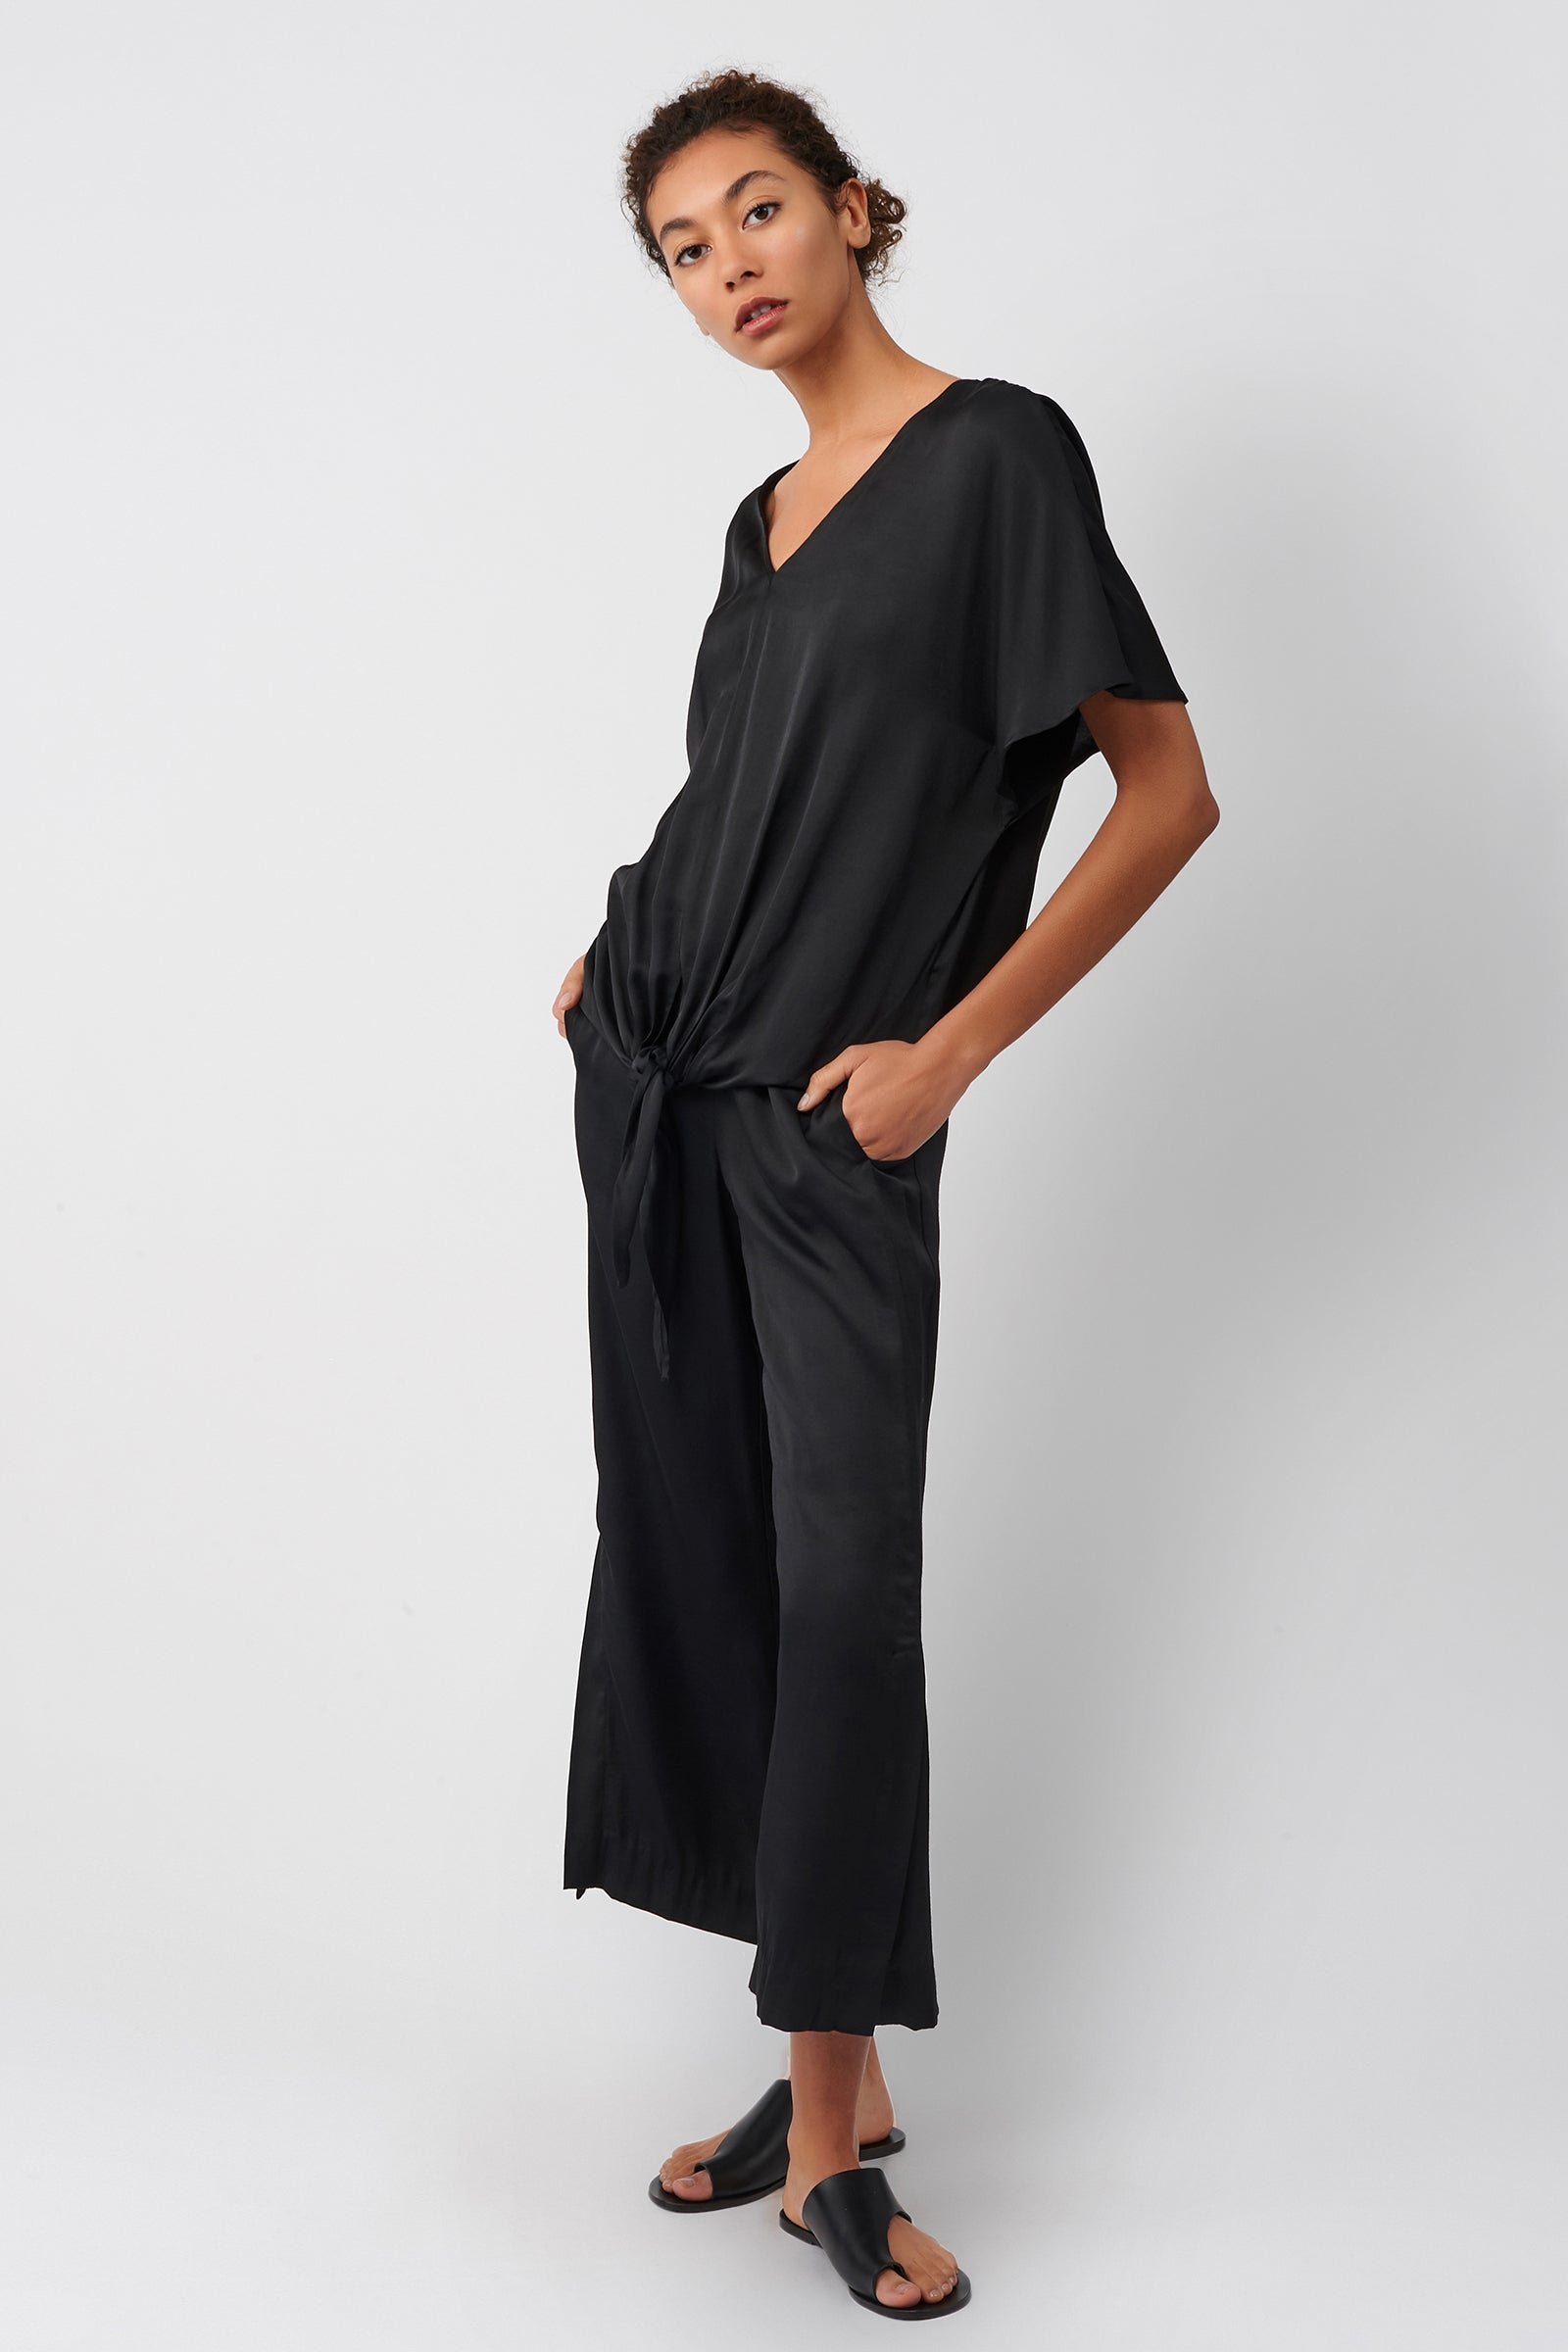 Kal Rieman Tie Front Top in Black on Model Full Side View